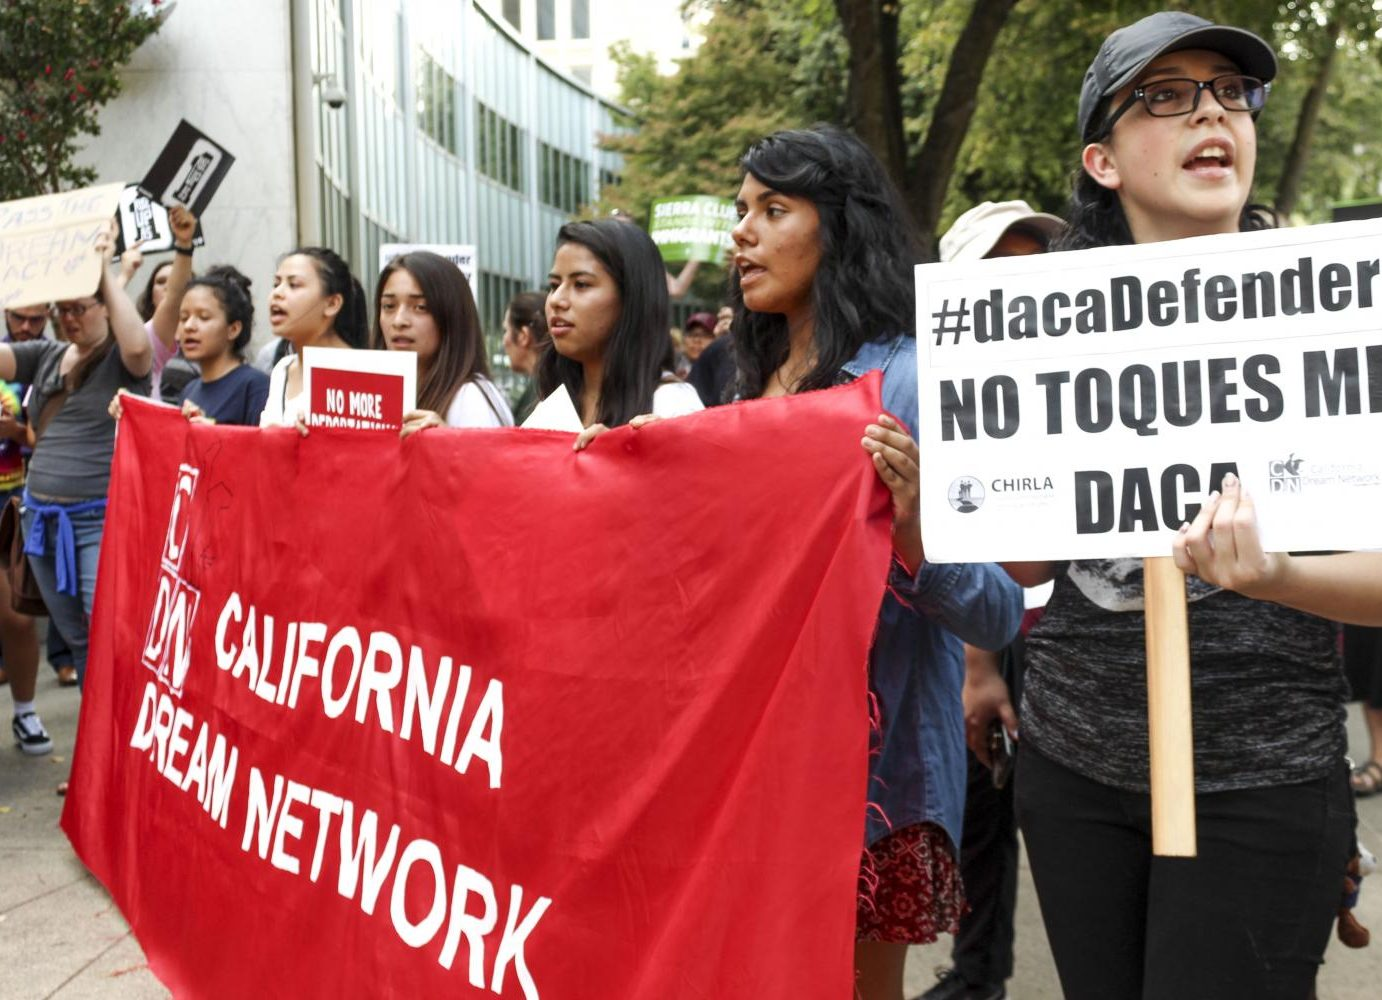 A crowd of local residents and Sac State students gather in downtown Sacramento Tuesday to protest, opposing the Trump administration's plans to eliminate DACA programs. (Photo by Claire Morgan)